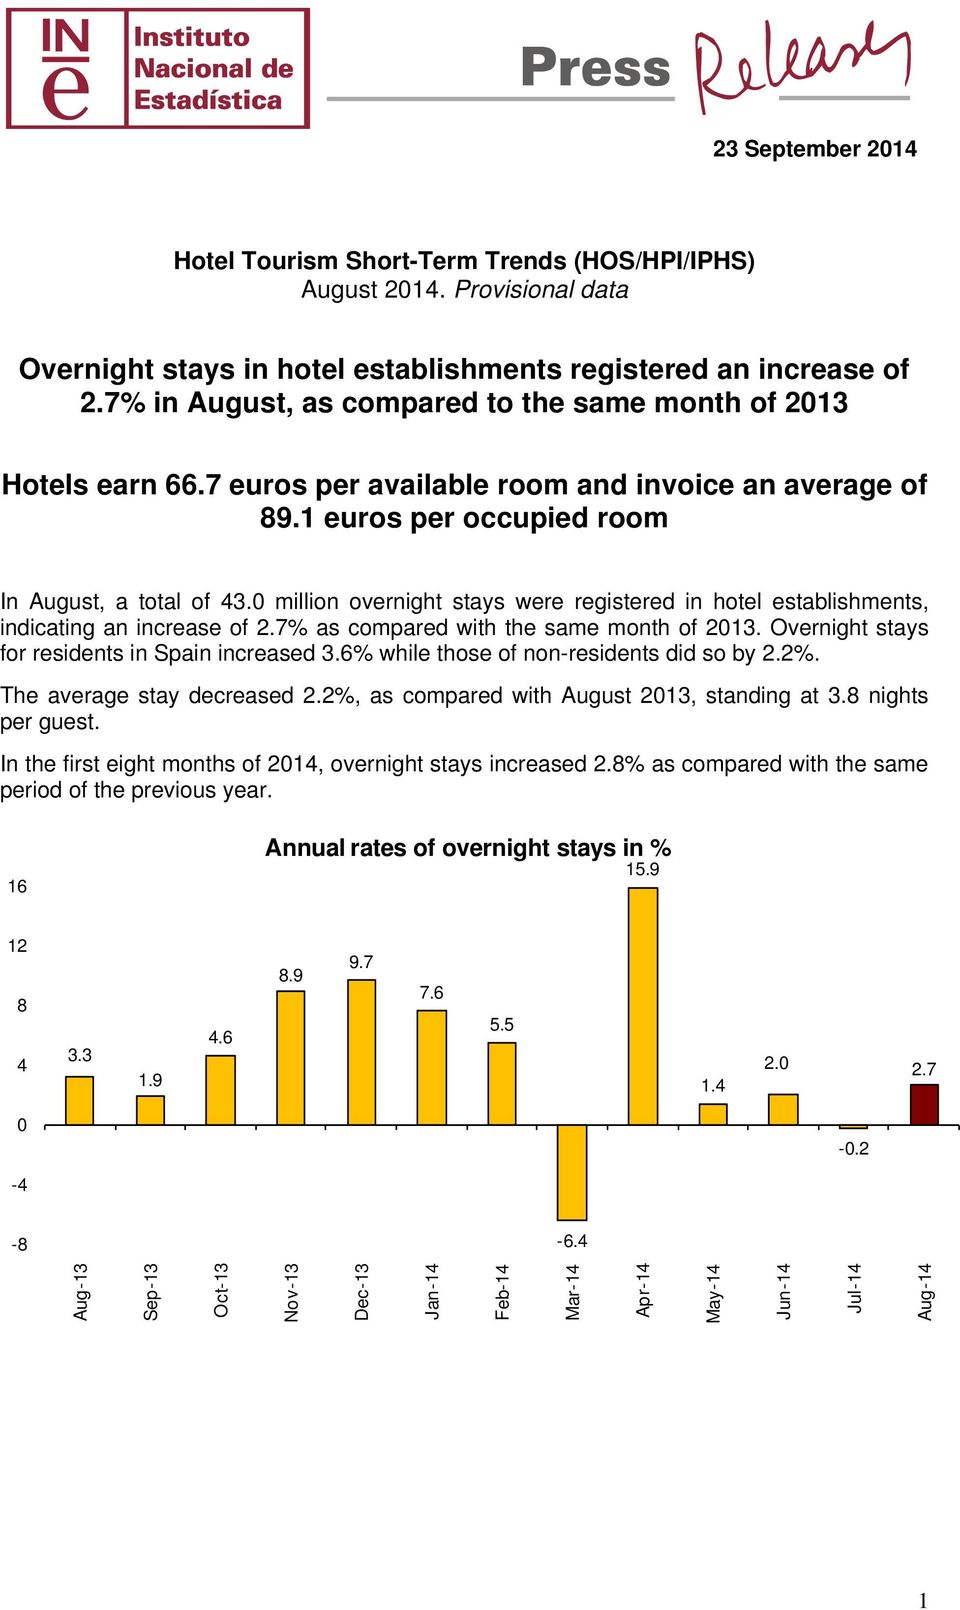 million overnight stays were registered in hotel establishments, indicating an increase of 2.7% as compared with the same month of 213. Overnight stays for residents in Spain increased 3.